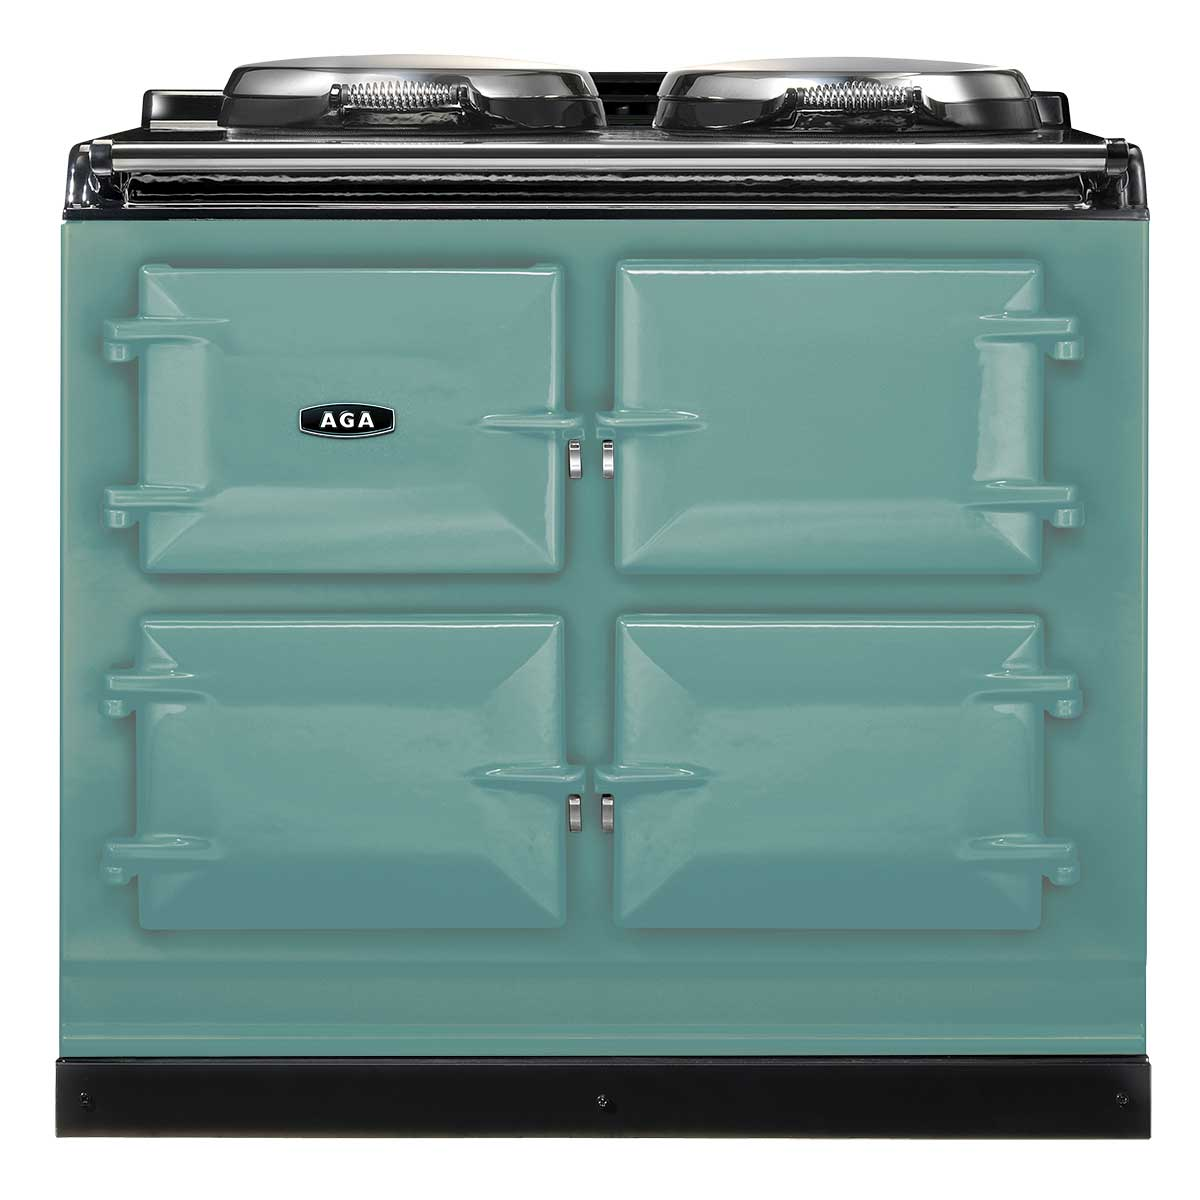 Colorful Range - AGA pistachio.jpg